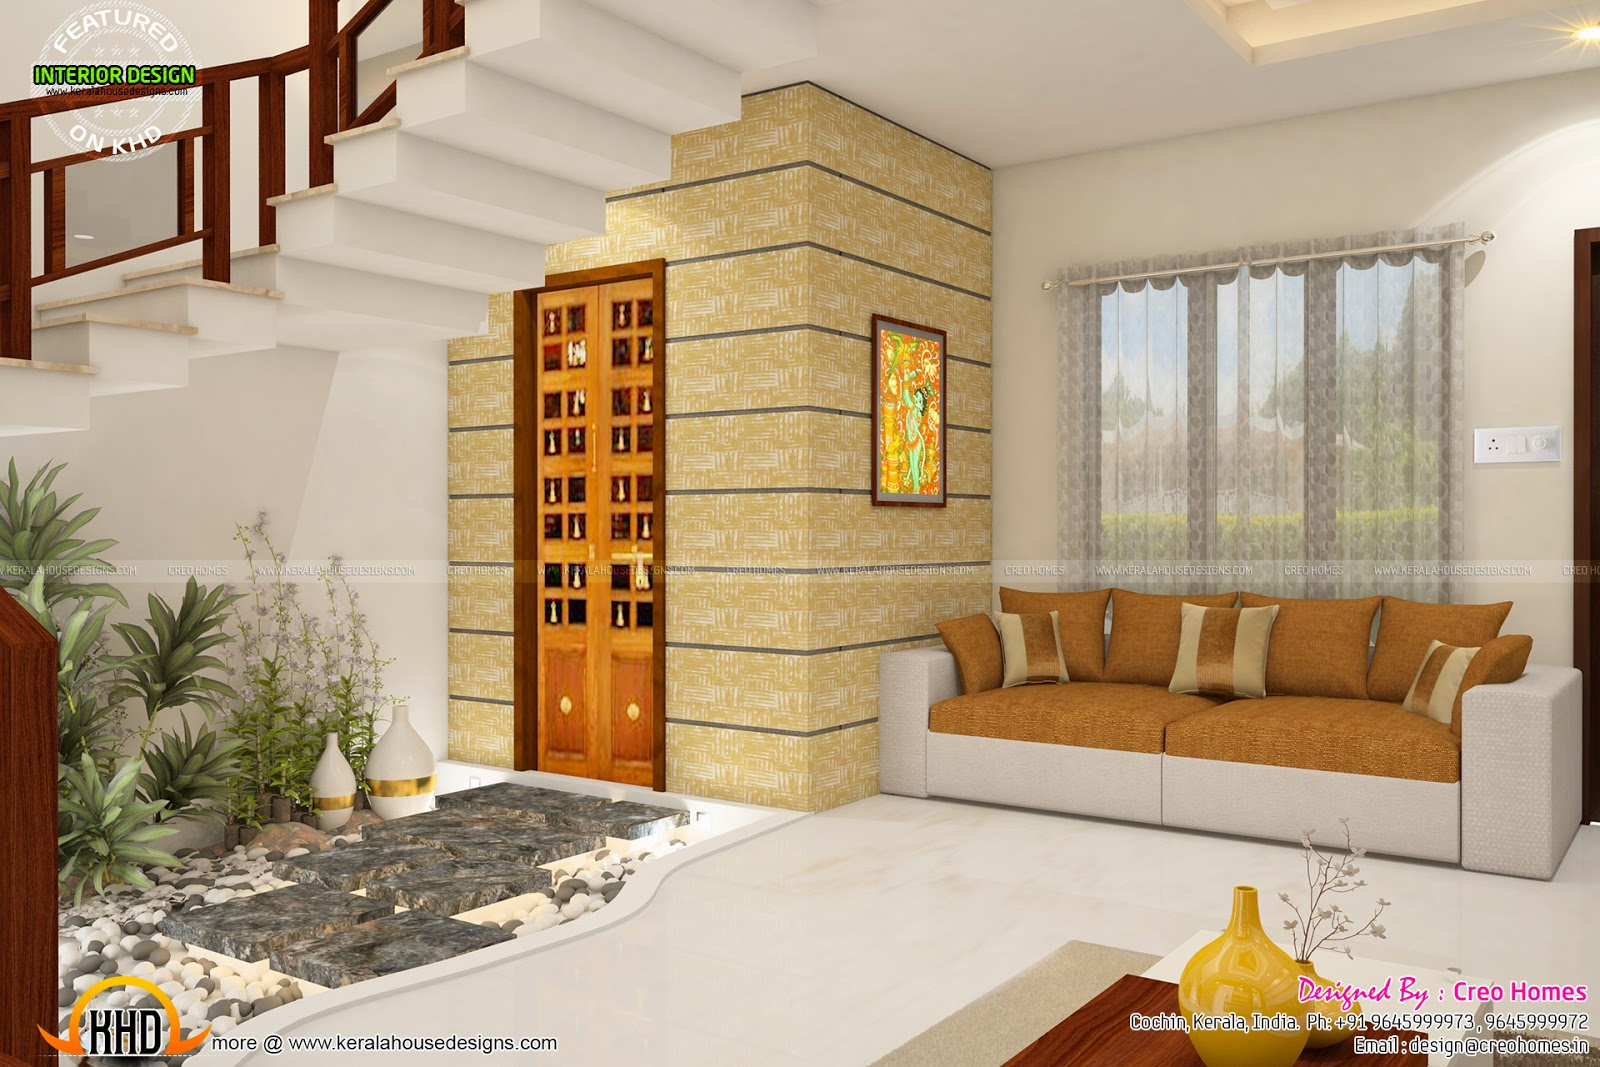 Total home interior solutions by creo homes kerala home Interior houses